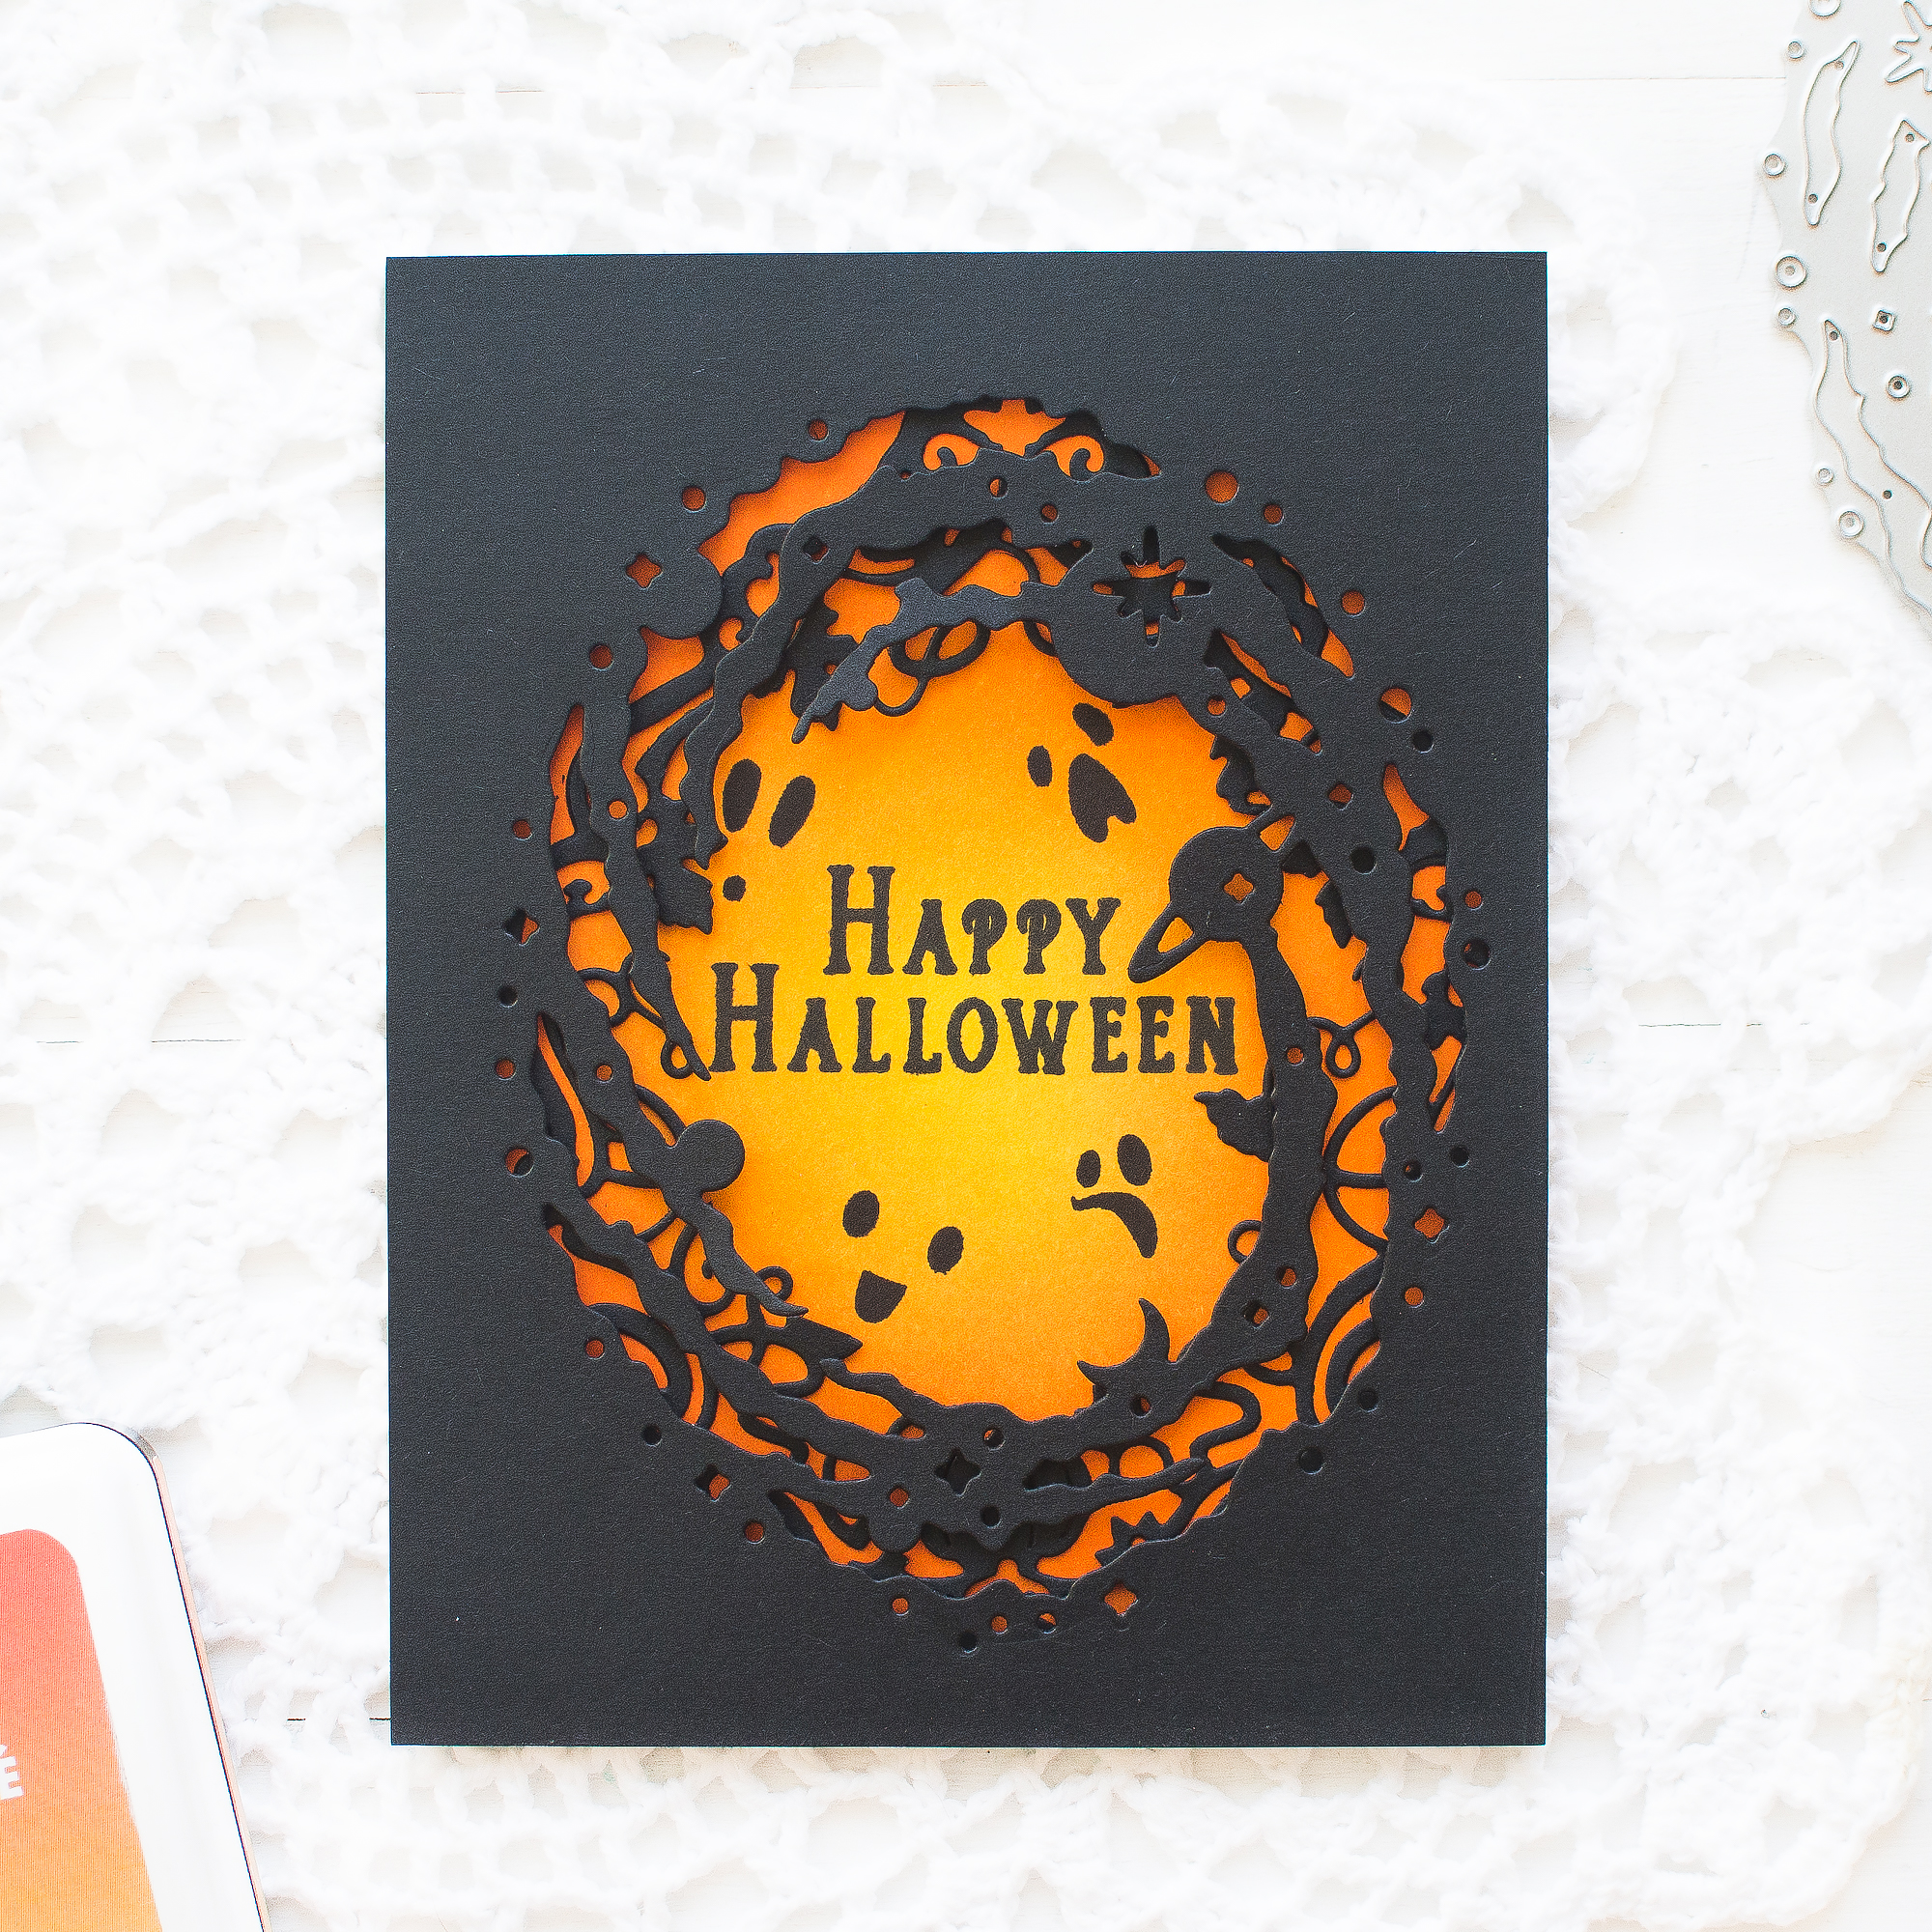 hero-arts-halloween-day-card